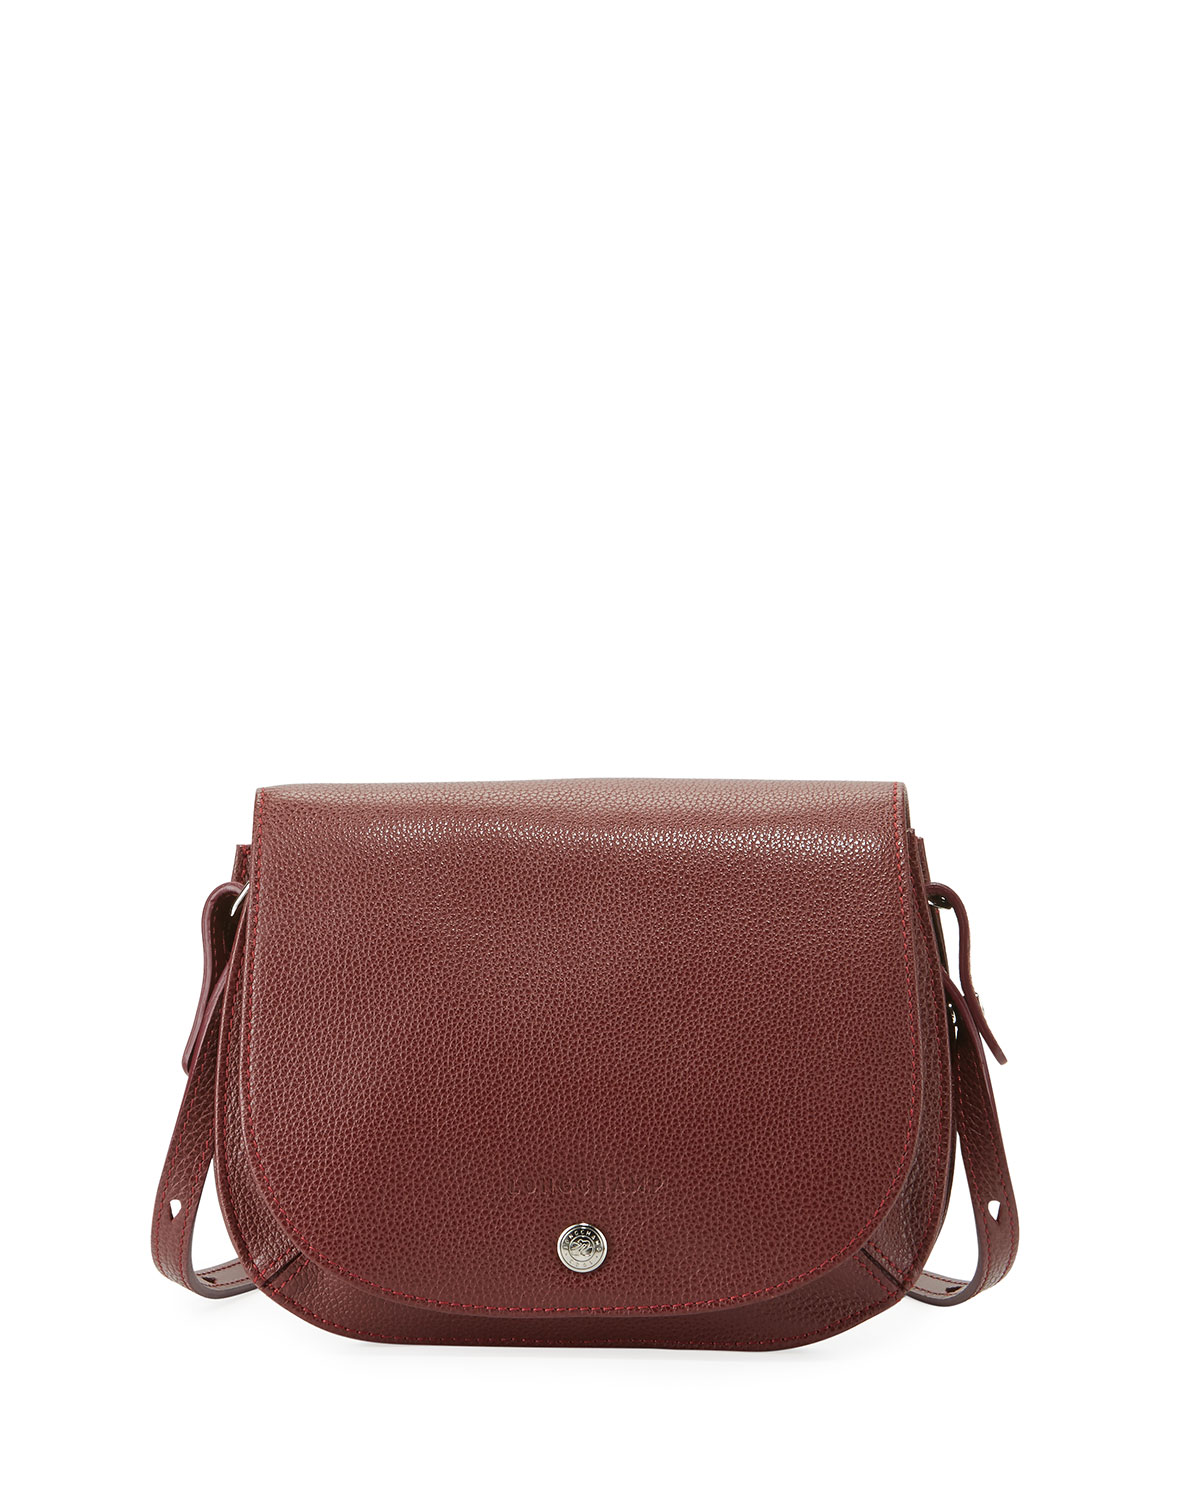 Longchamp Le Foulonne Small Cross Body Bag  b69cb25515625